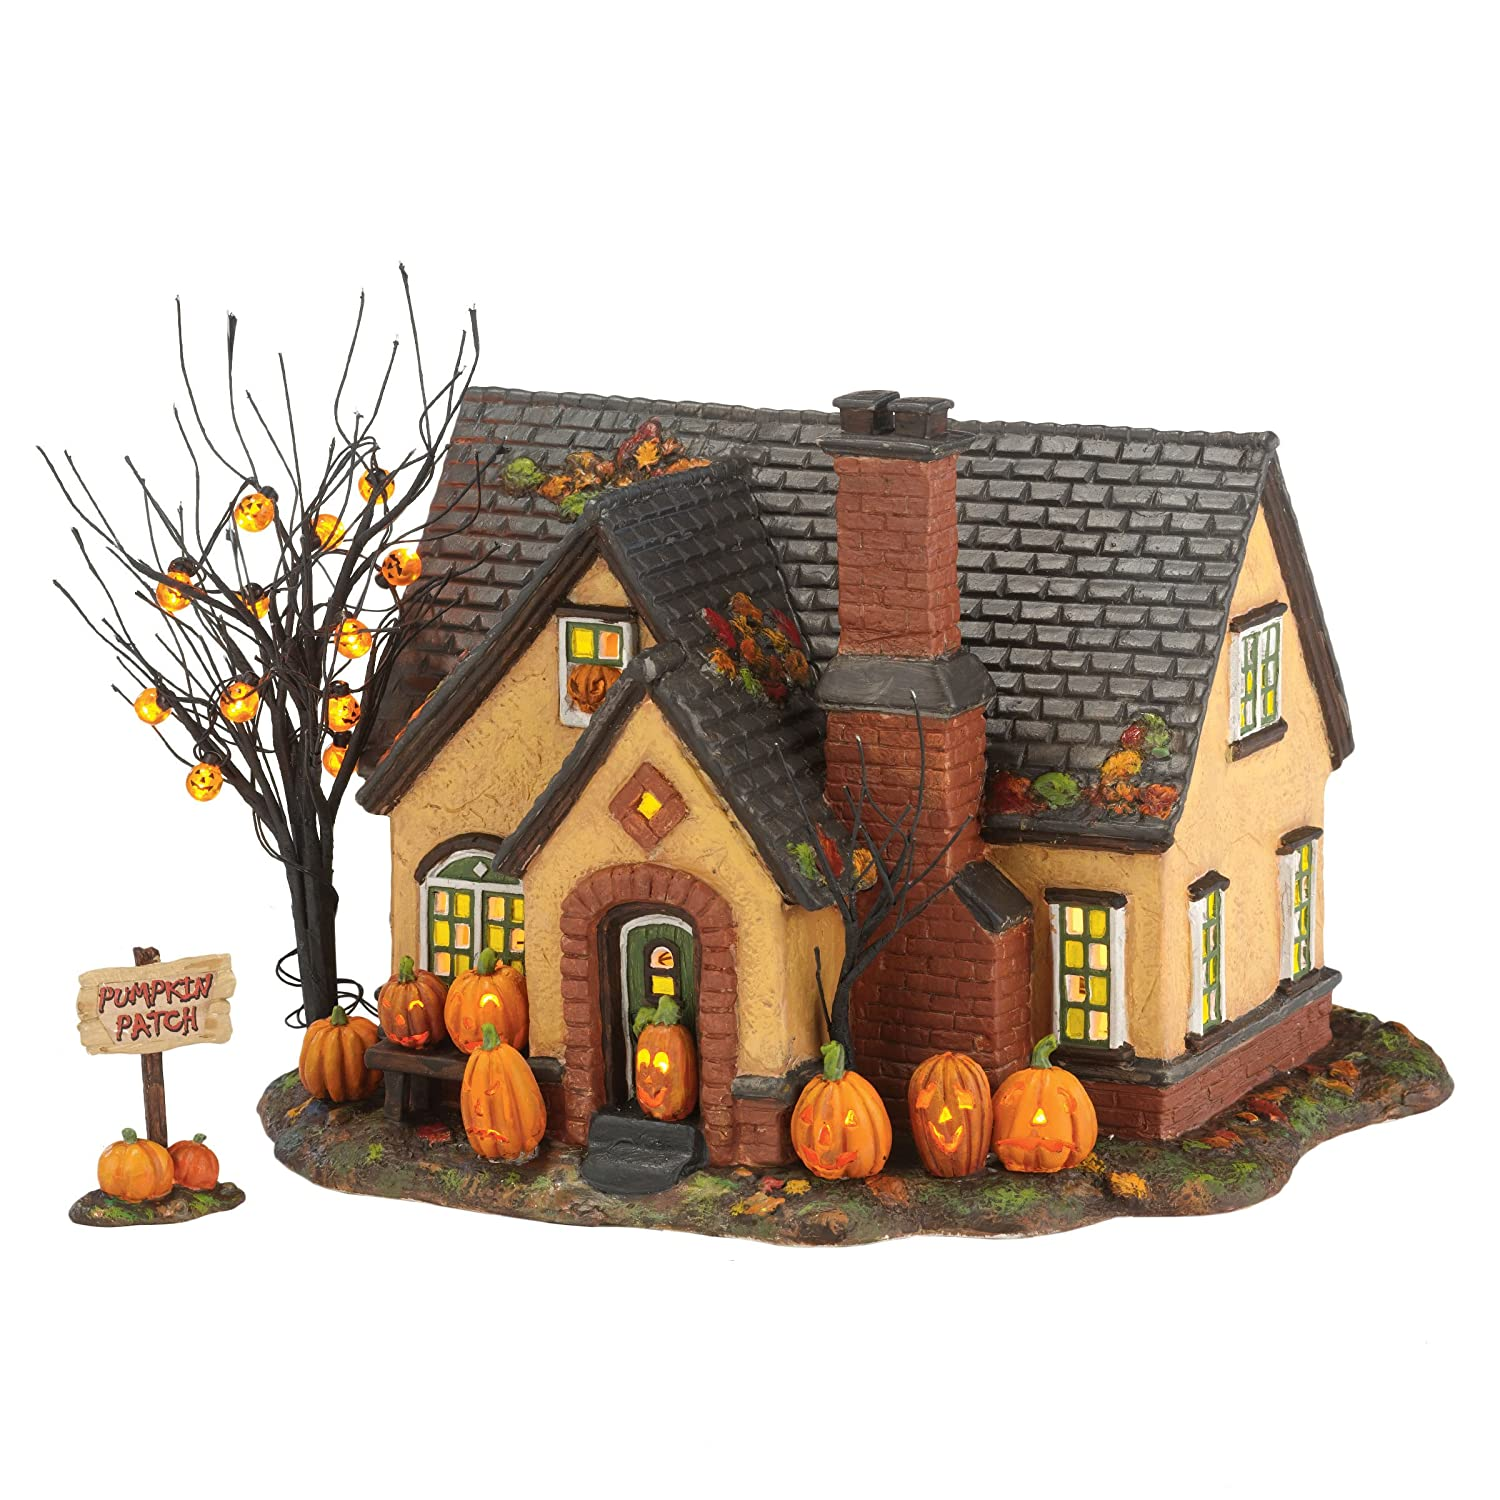 Department 56 Snow Village Halloween Pumpkin House Lit Building, 6.69 inch (4030757)